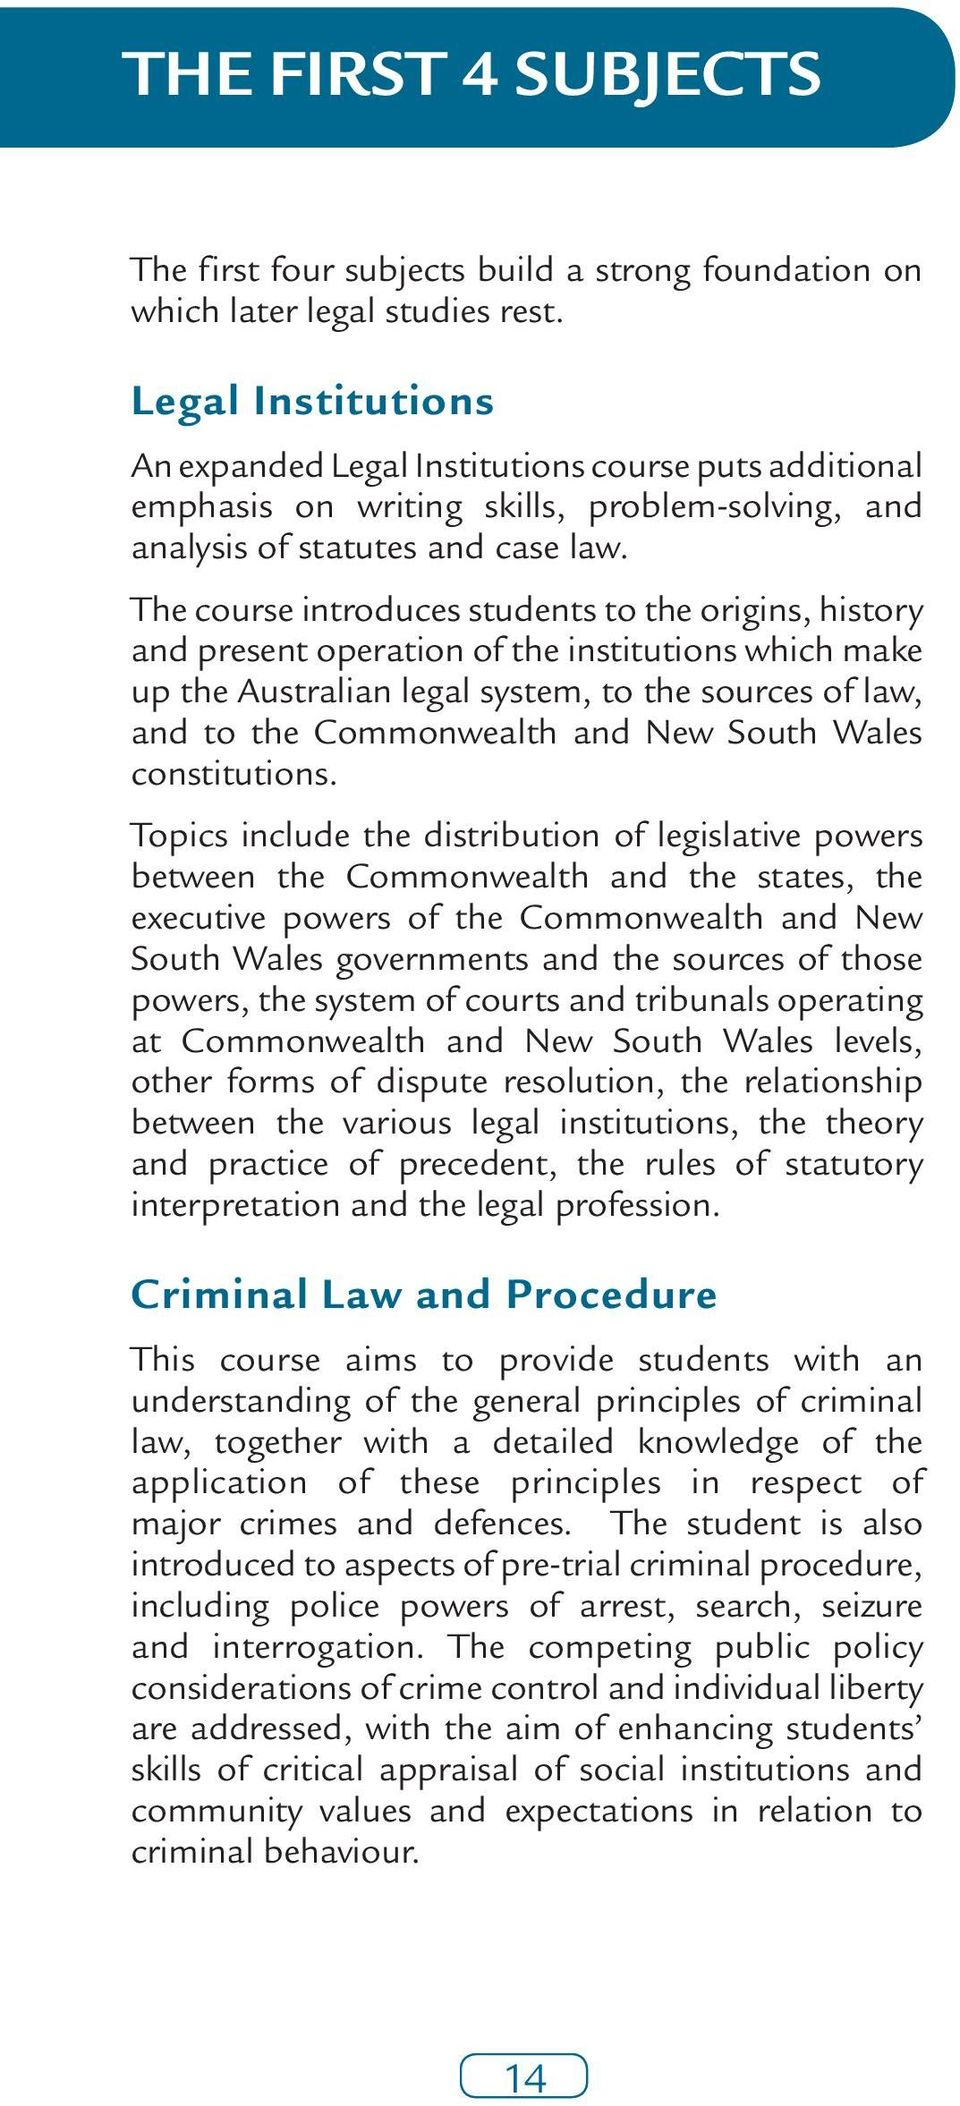 The course introduces students to the origins, history and present operation of the institutions which make up the Australian legal system, to the sources of law, and to the Commonwealth and New